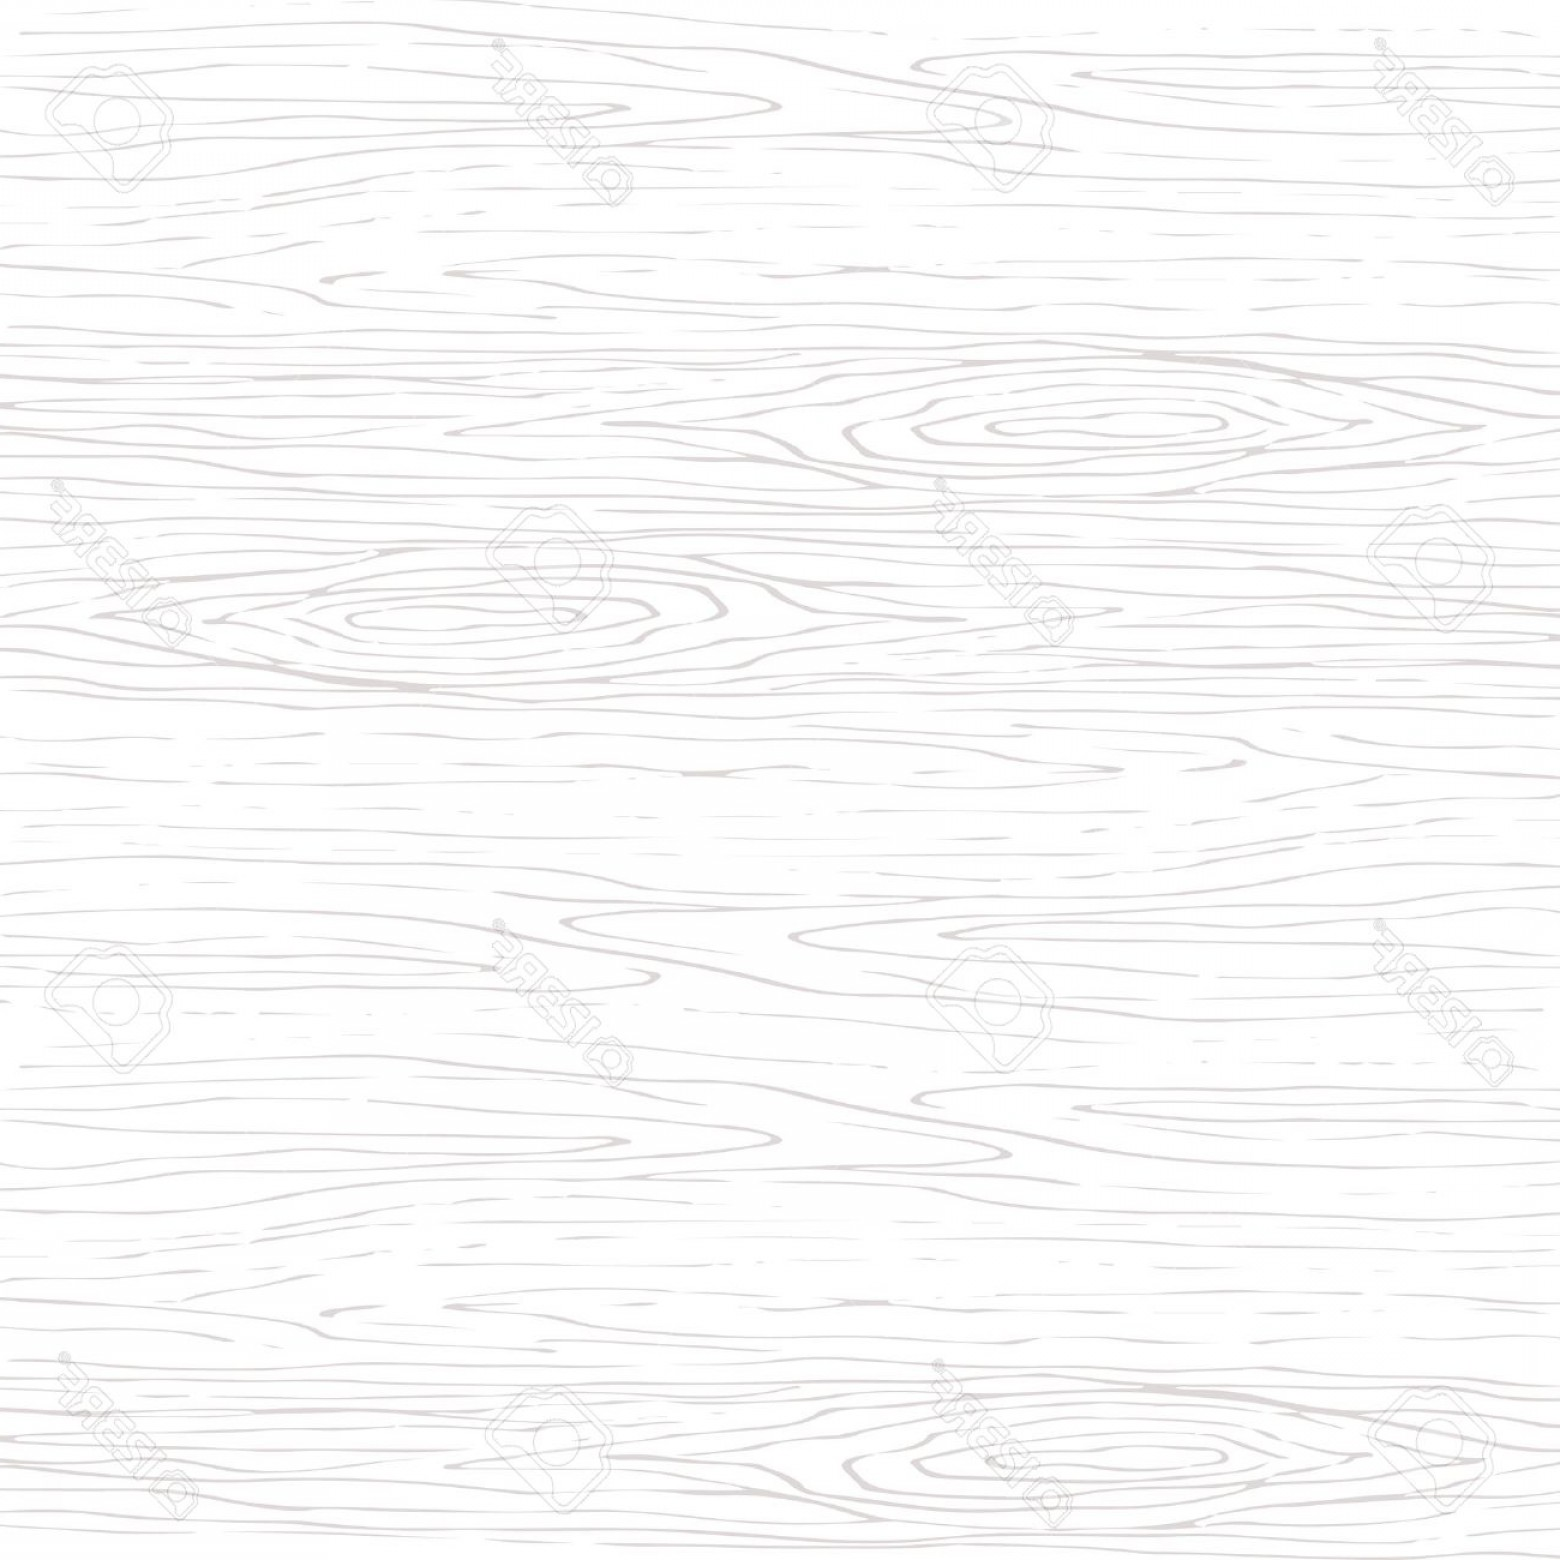 Photostock Vector Wooden Hand Drawn Texture Background Wood Sketch Surface Bar Floor Grain White Plan